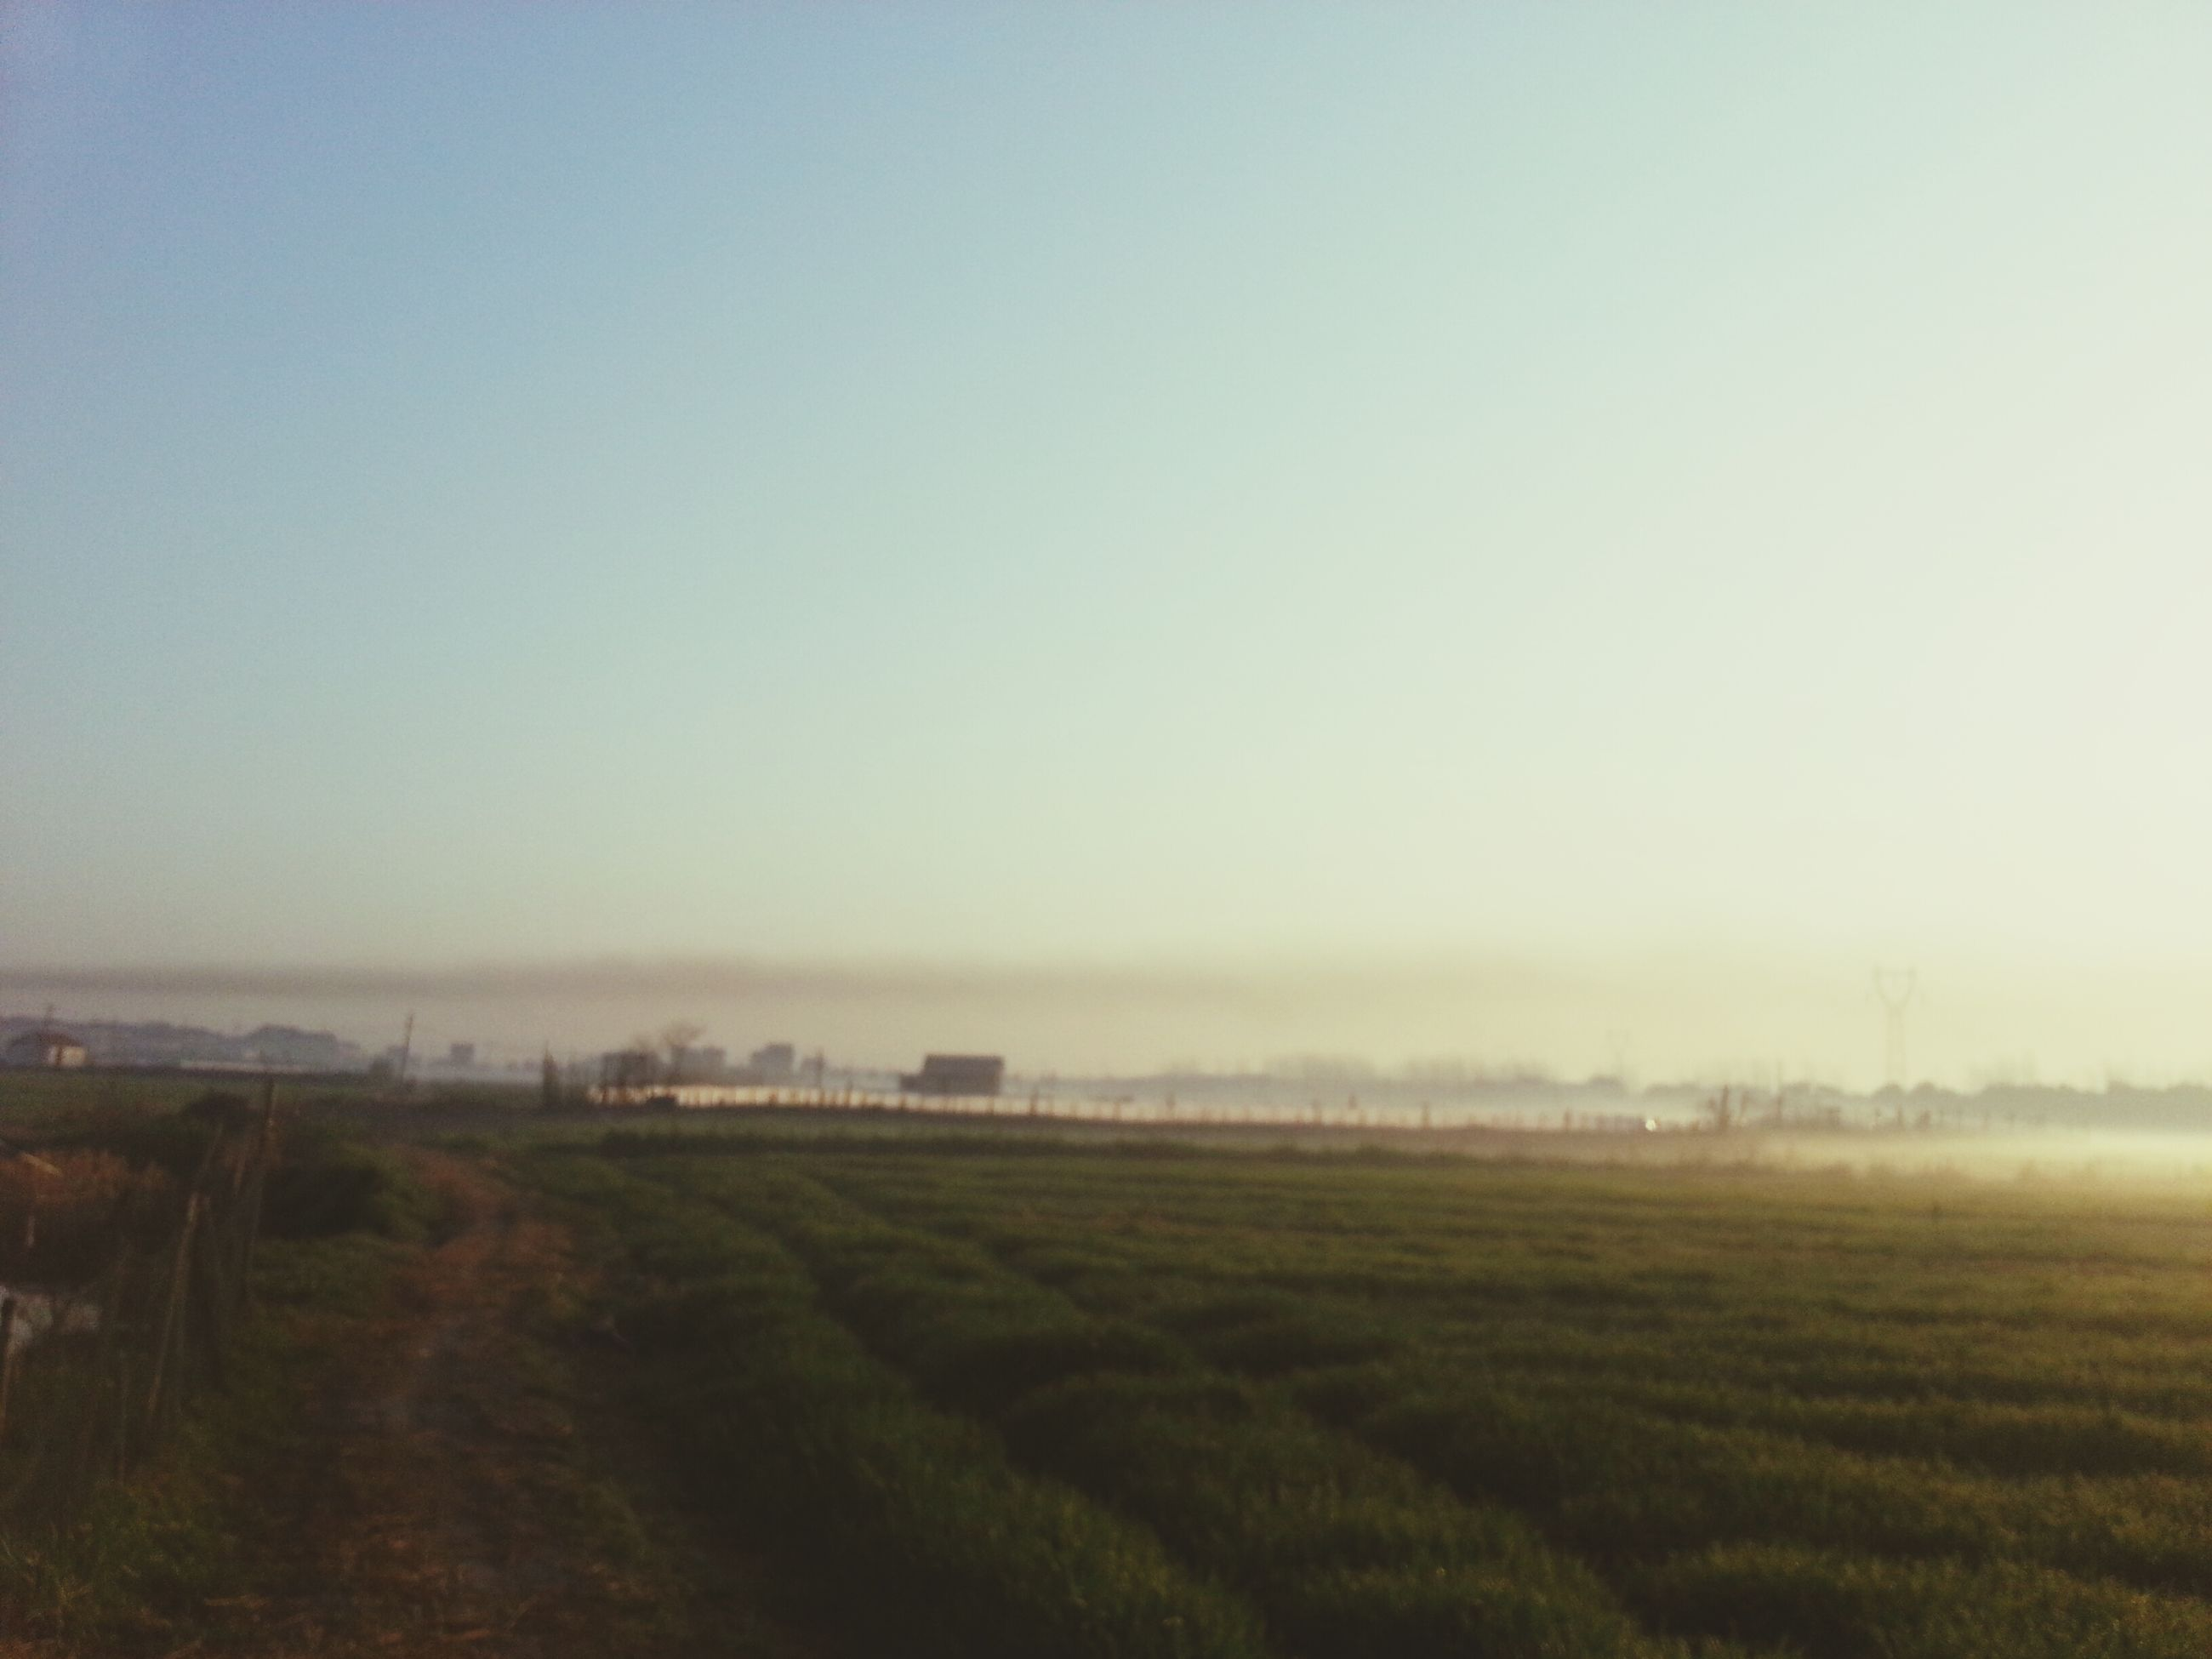 field, landscape, copy space, clear sky, tranquil scene, tranquility, grass, foggy, rural scene, nature, beauty in nature, scenics, weather, agriculture, grassy, farm, growth, tree, sky